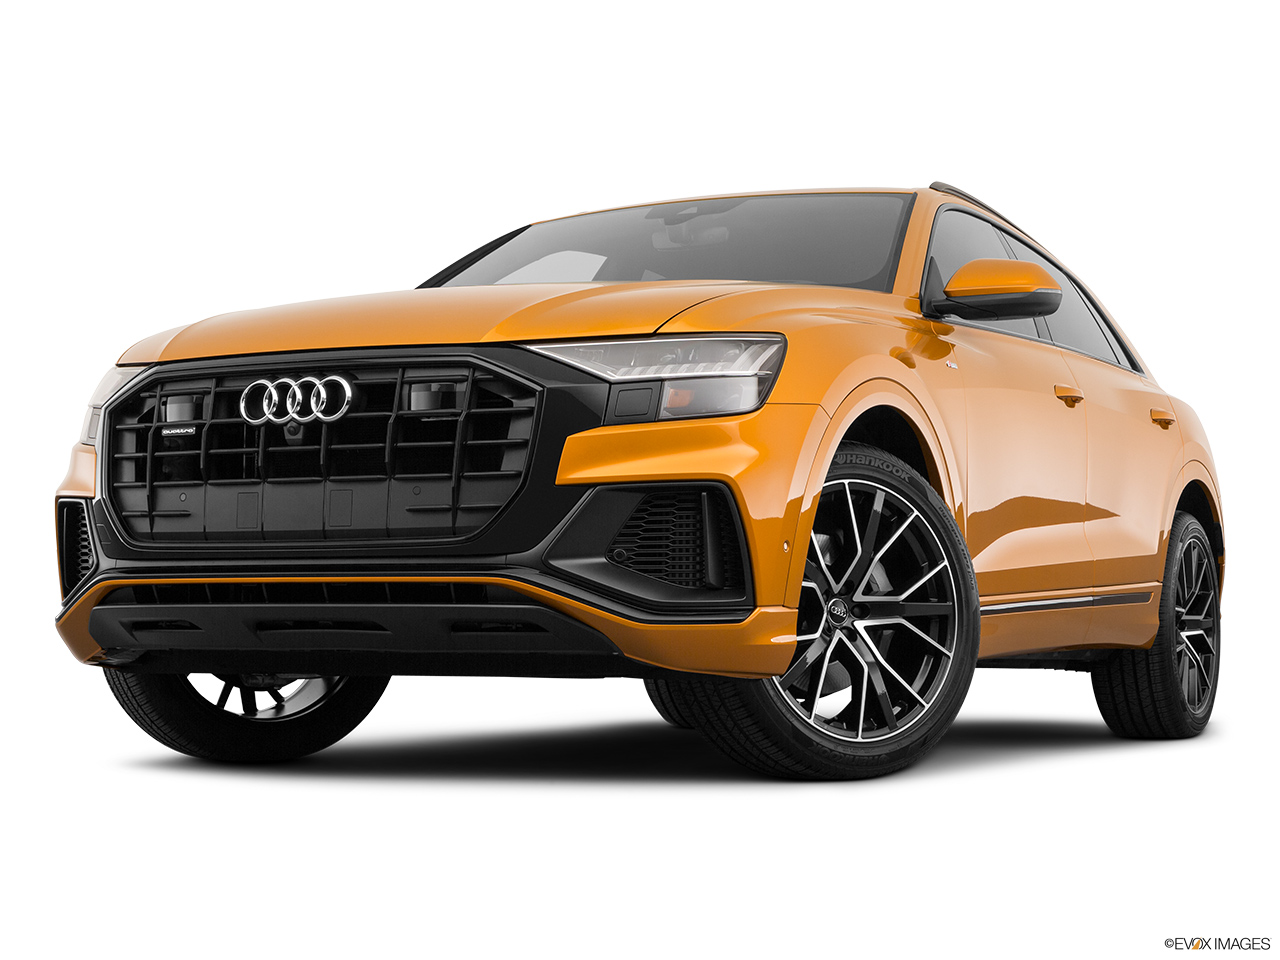 2019 Audi Q8 Prestige 3.0 TFSI Front angle view, low wide perspective.